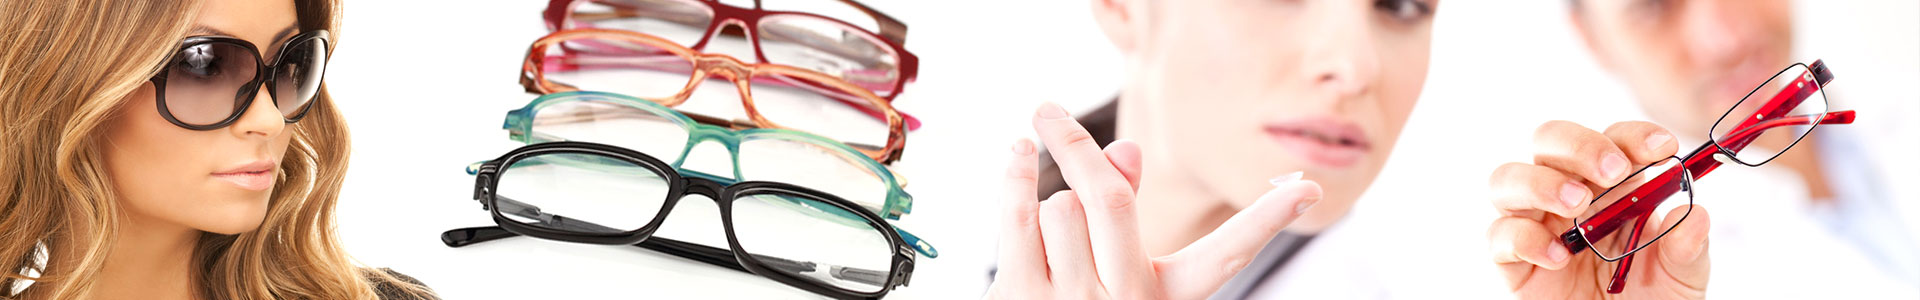 optical-store-white-eye-care-logan-wv-family-eye-care-eye-exams-designer-frames-sunglasses-contacts-banner